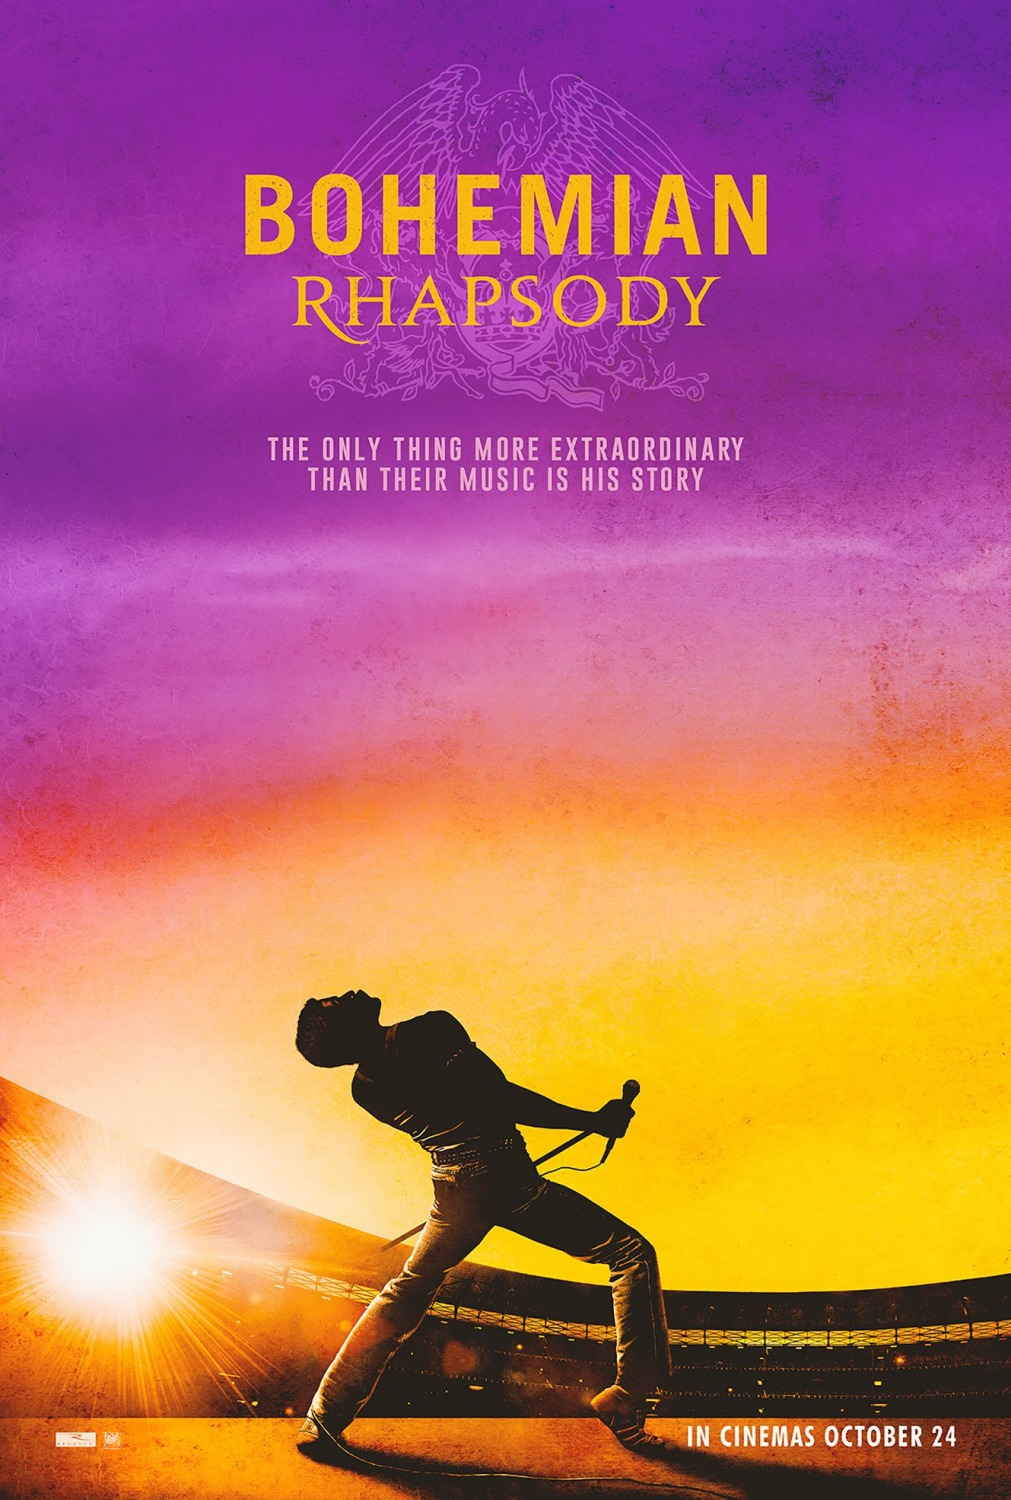 Extra Large Movie Poster Image for Bohemian Rhapsody (#2 of 10)